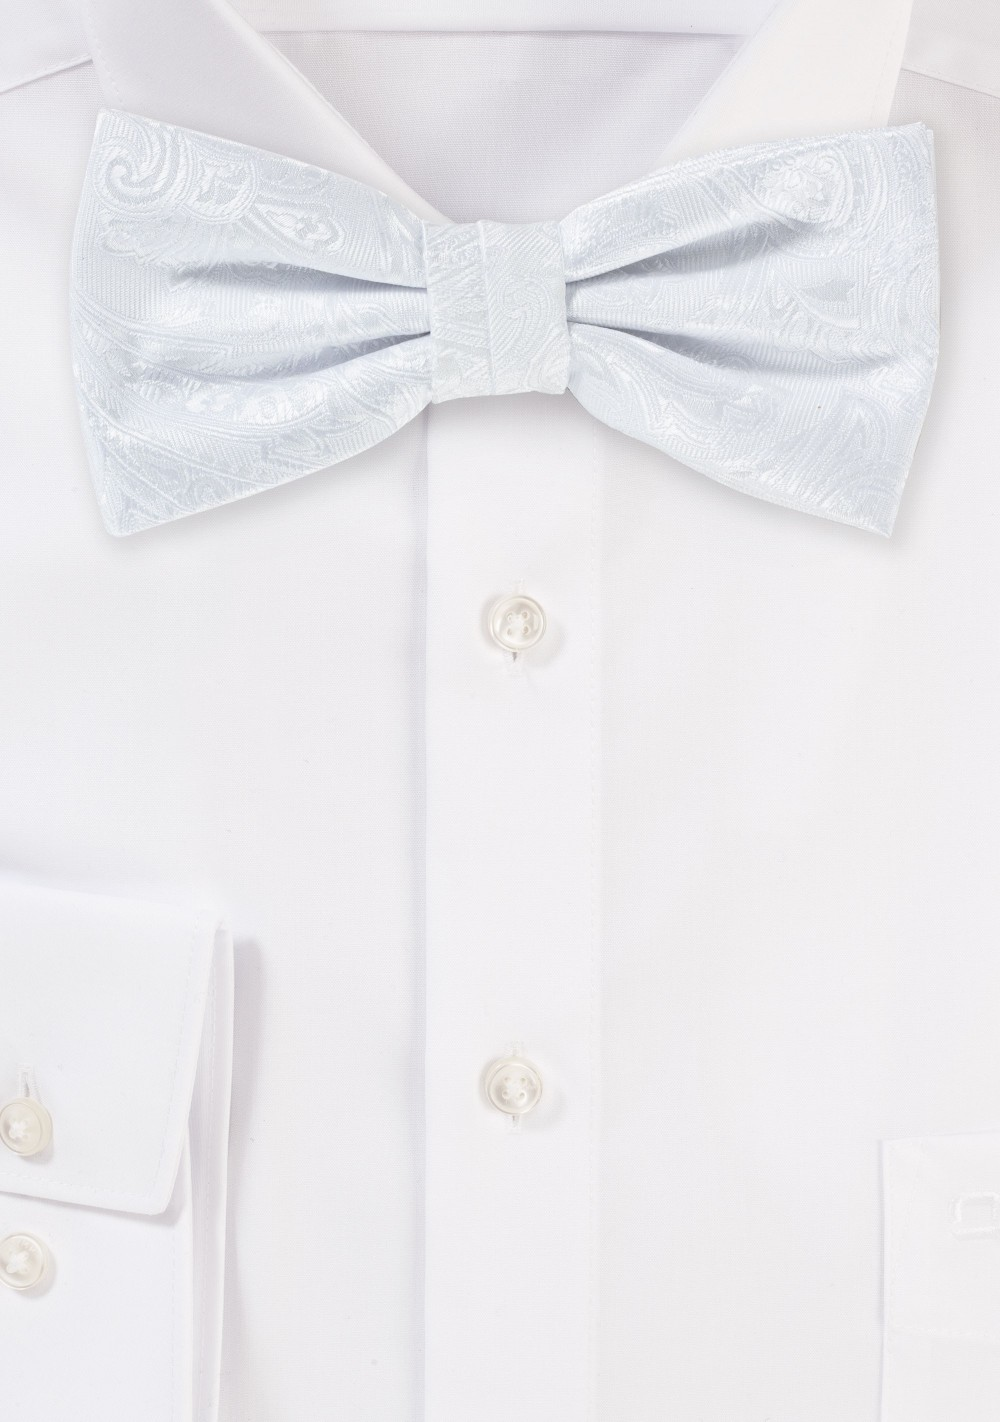 Bright White Paisley Bowtie